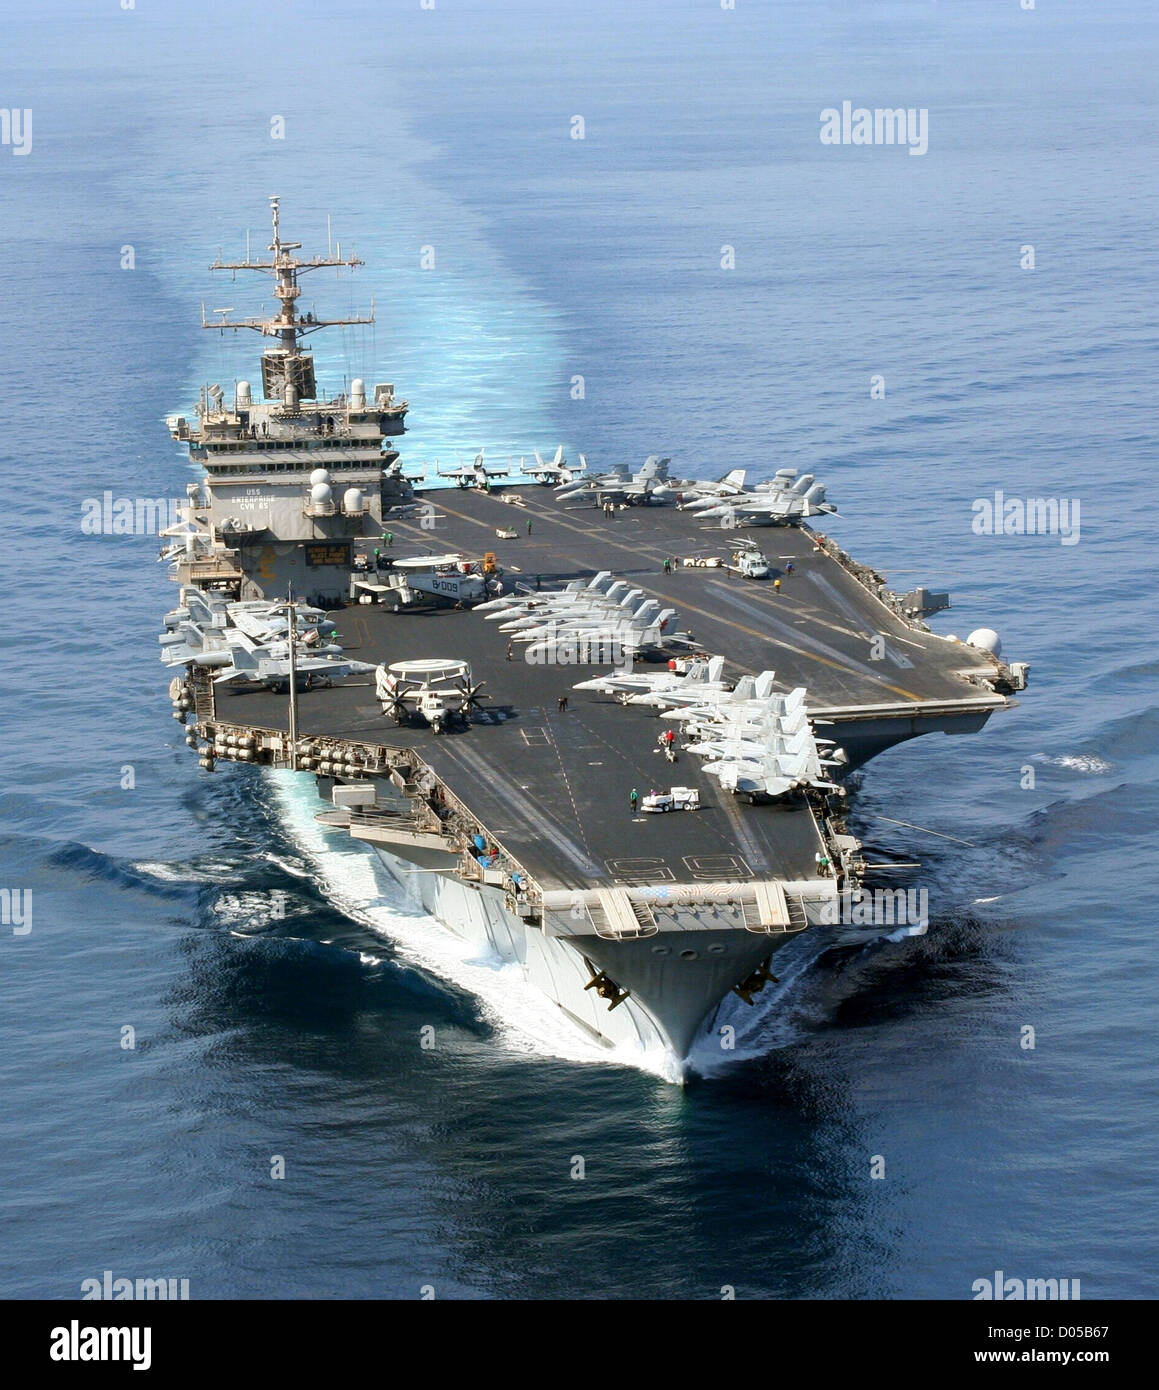 The nuclear-powered aircraft carrier USS Enterprise transits through the North Arabian Sea conducting flight operations - Stock Image